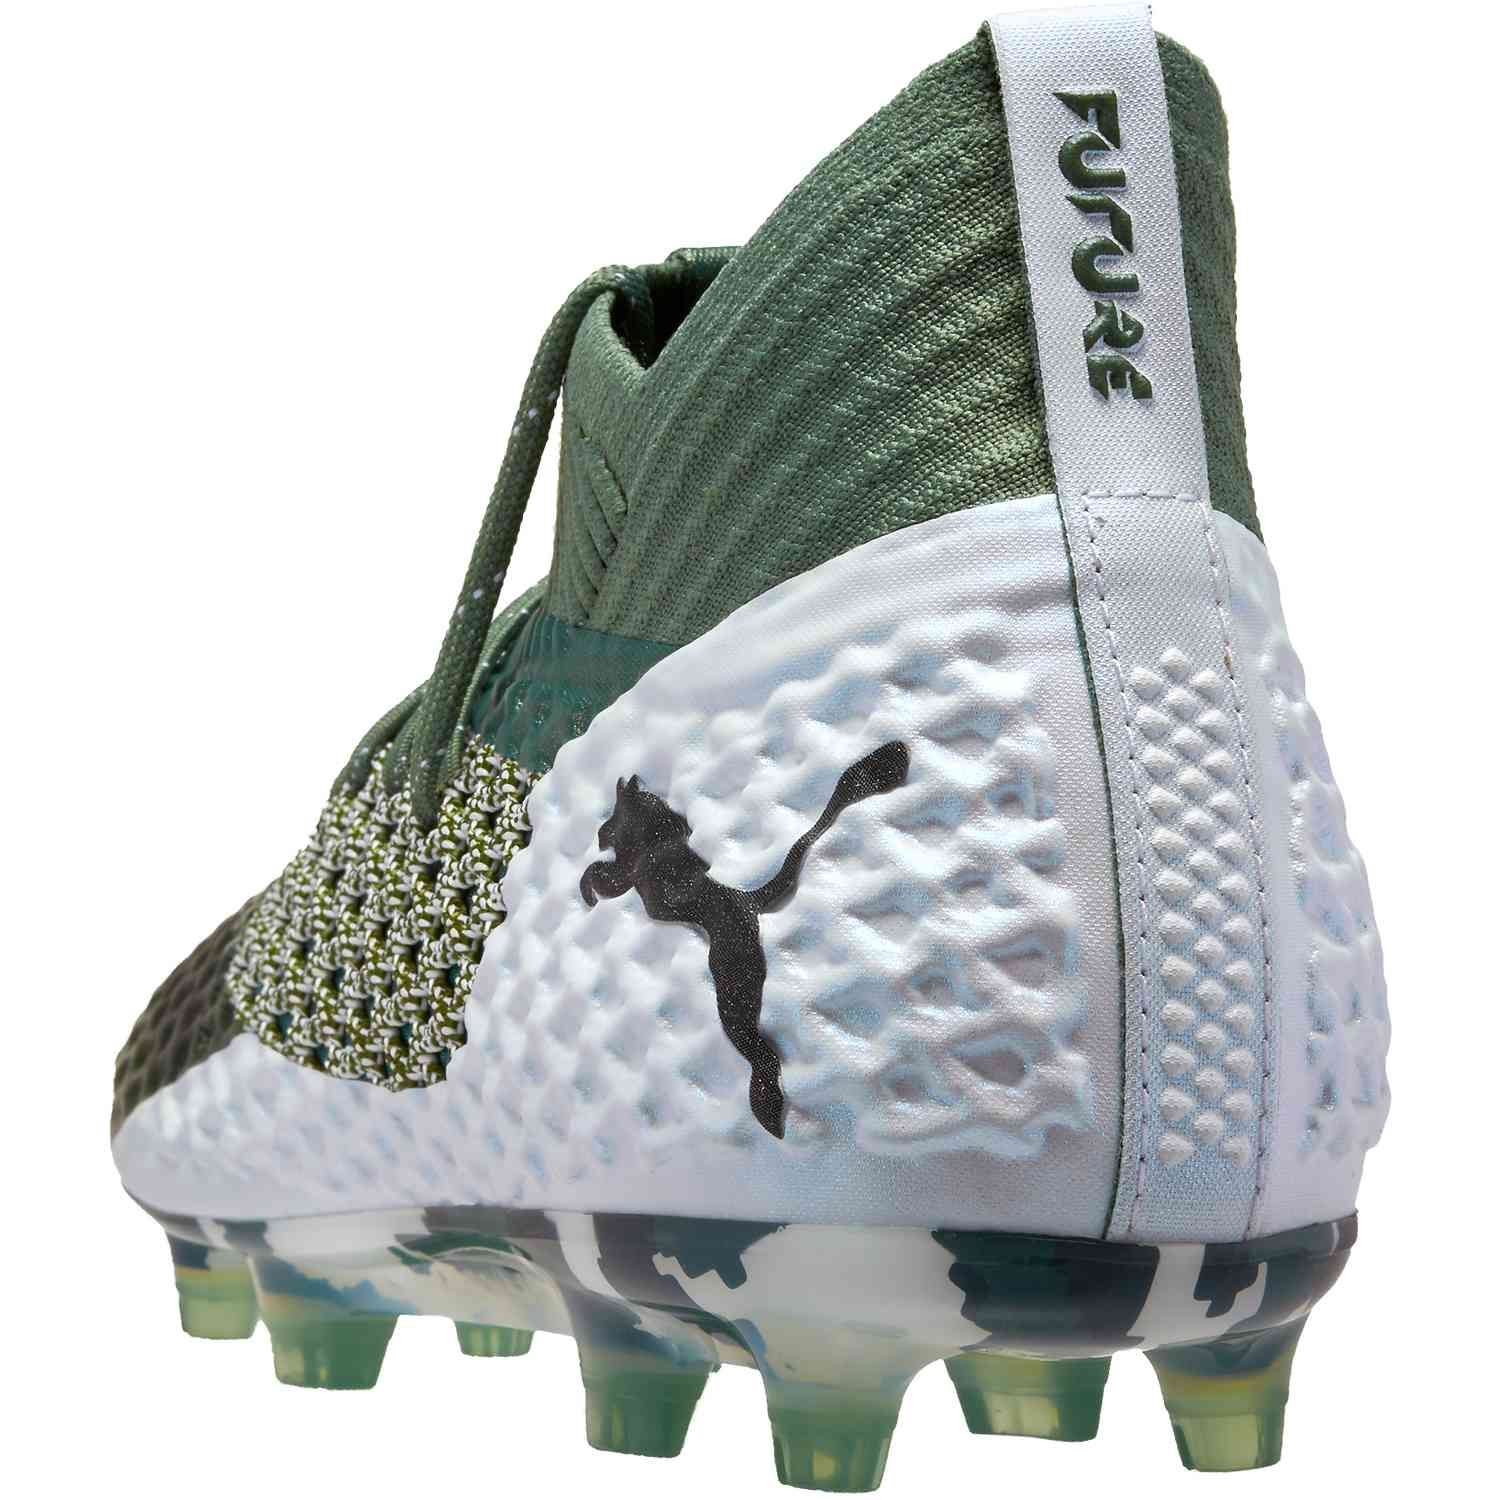 20a6859d45458 PUMA Future 2.1 Netfit FG - Laurel Wreath White black - SoccerPro